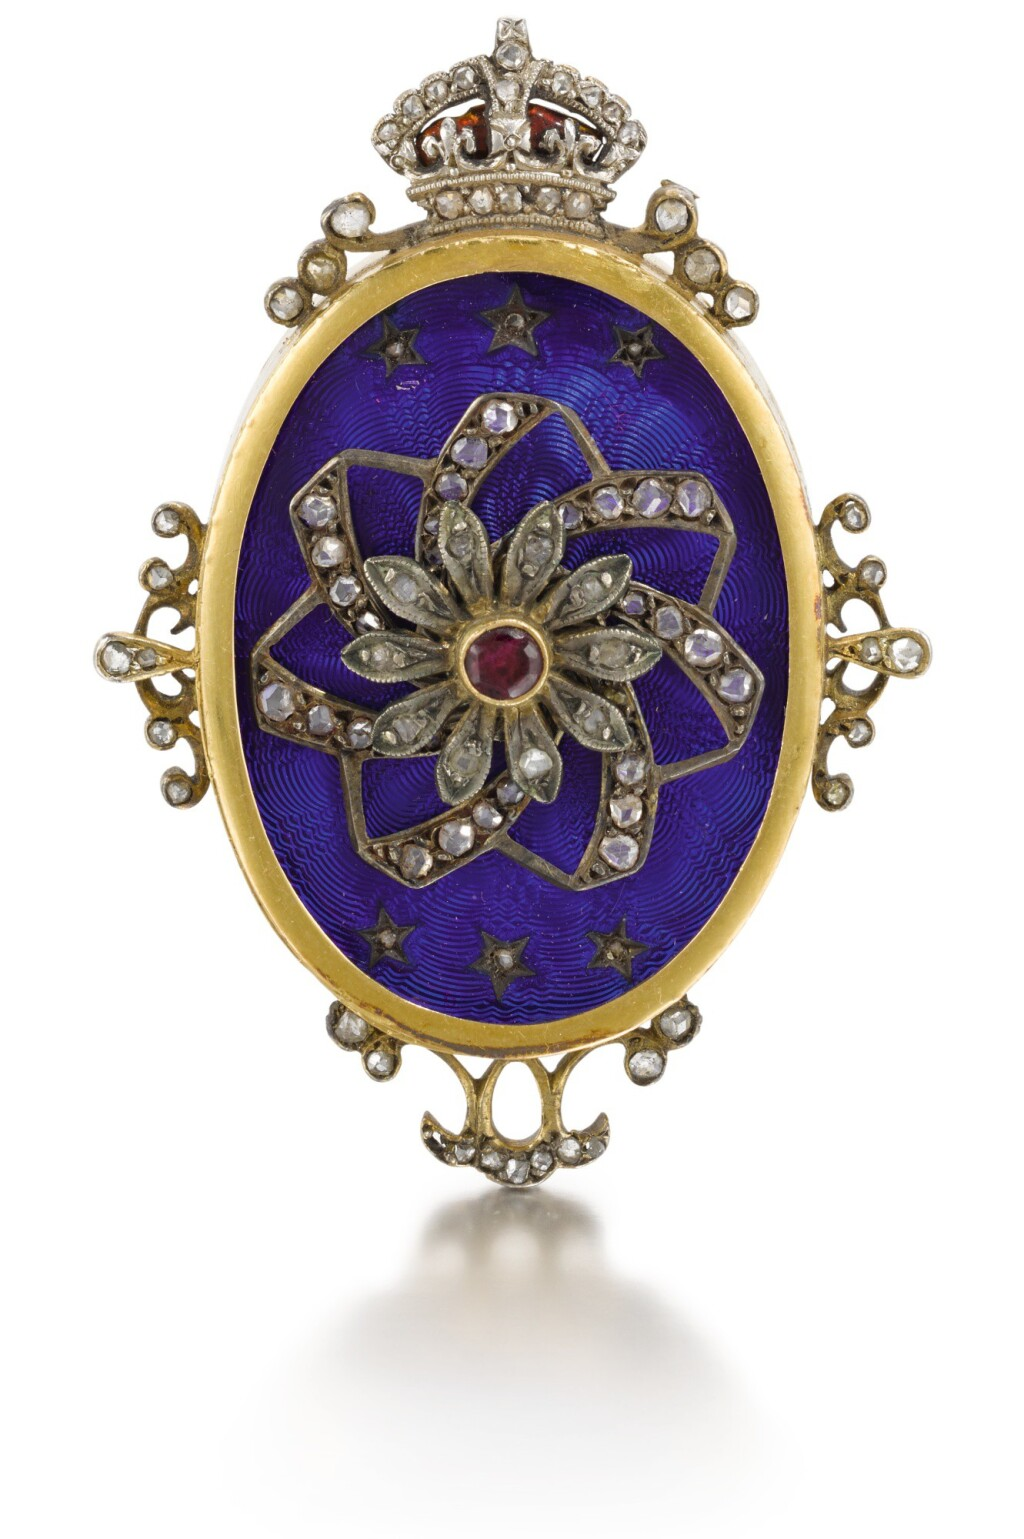 SWISS | A GOLD, ENAMEL, DIAMOND AND RUBY-SET AUTOMATON PENDANT MADE FOR THE CHINESE MARKET  CIRCA 1880